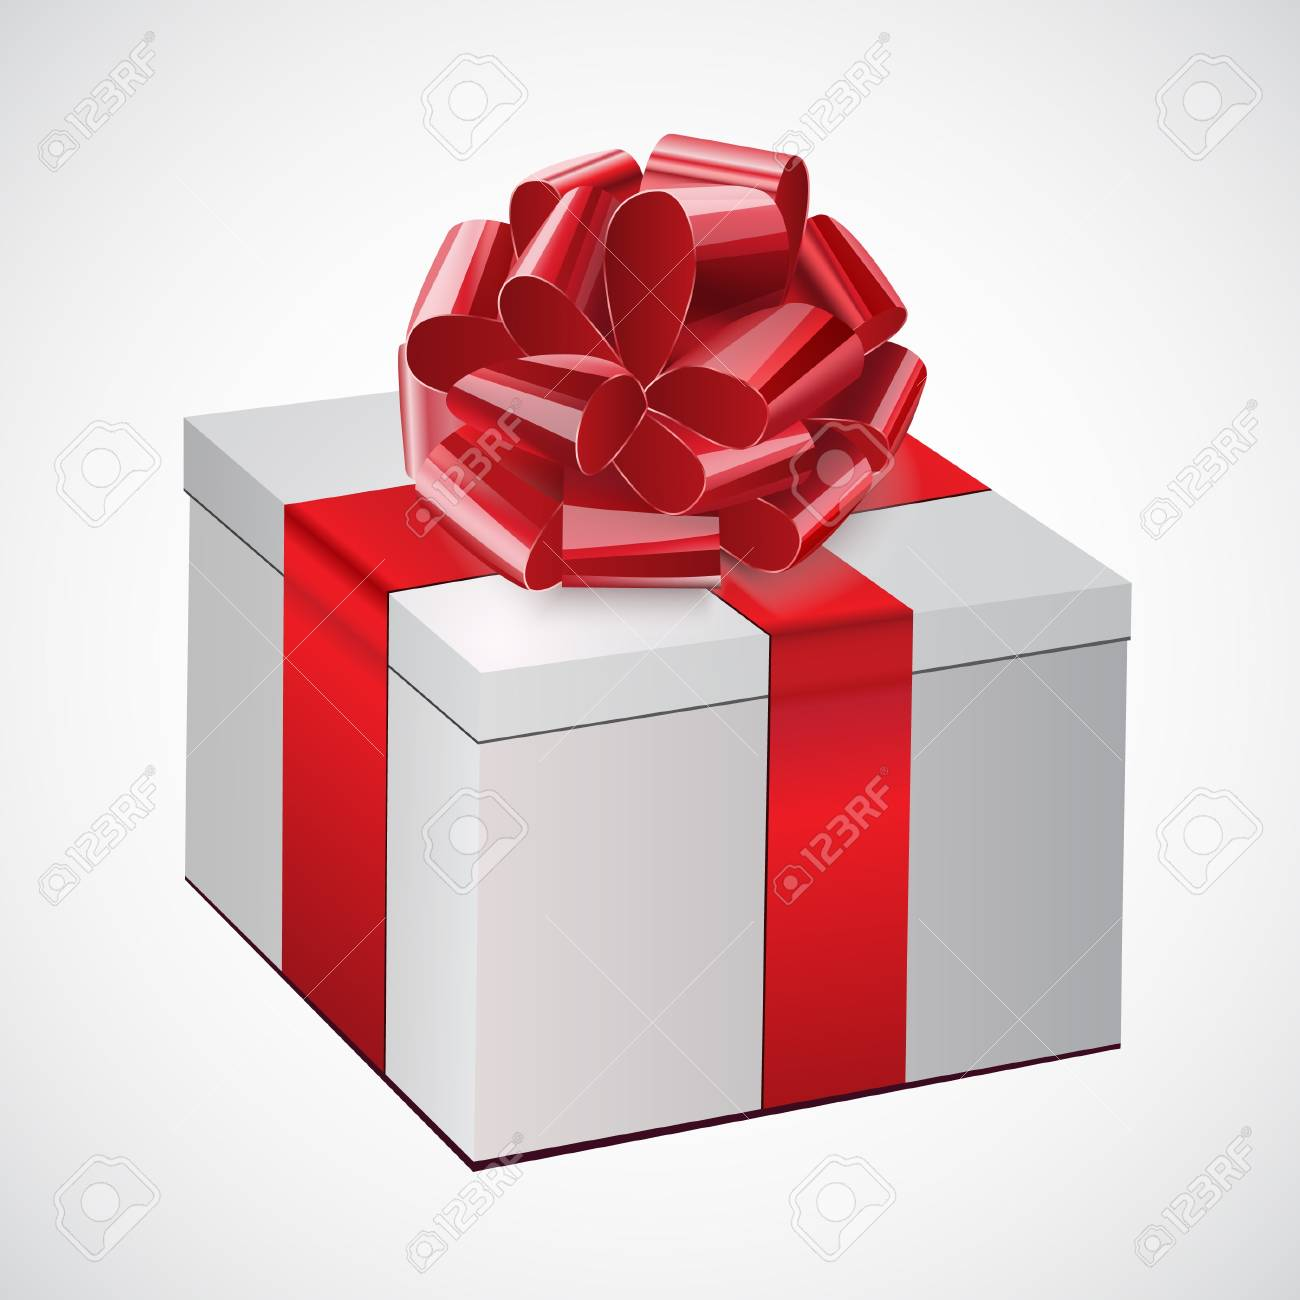 Gift  box with a red bow Stock Vector - 16952549